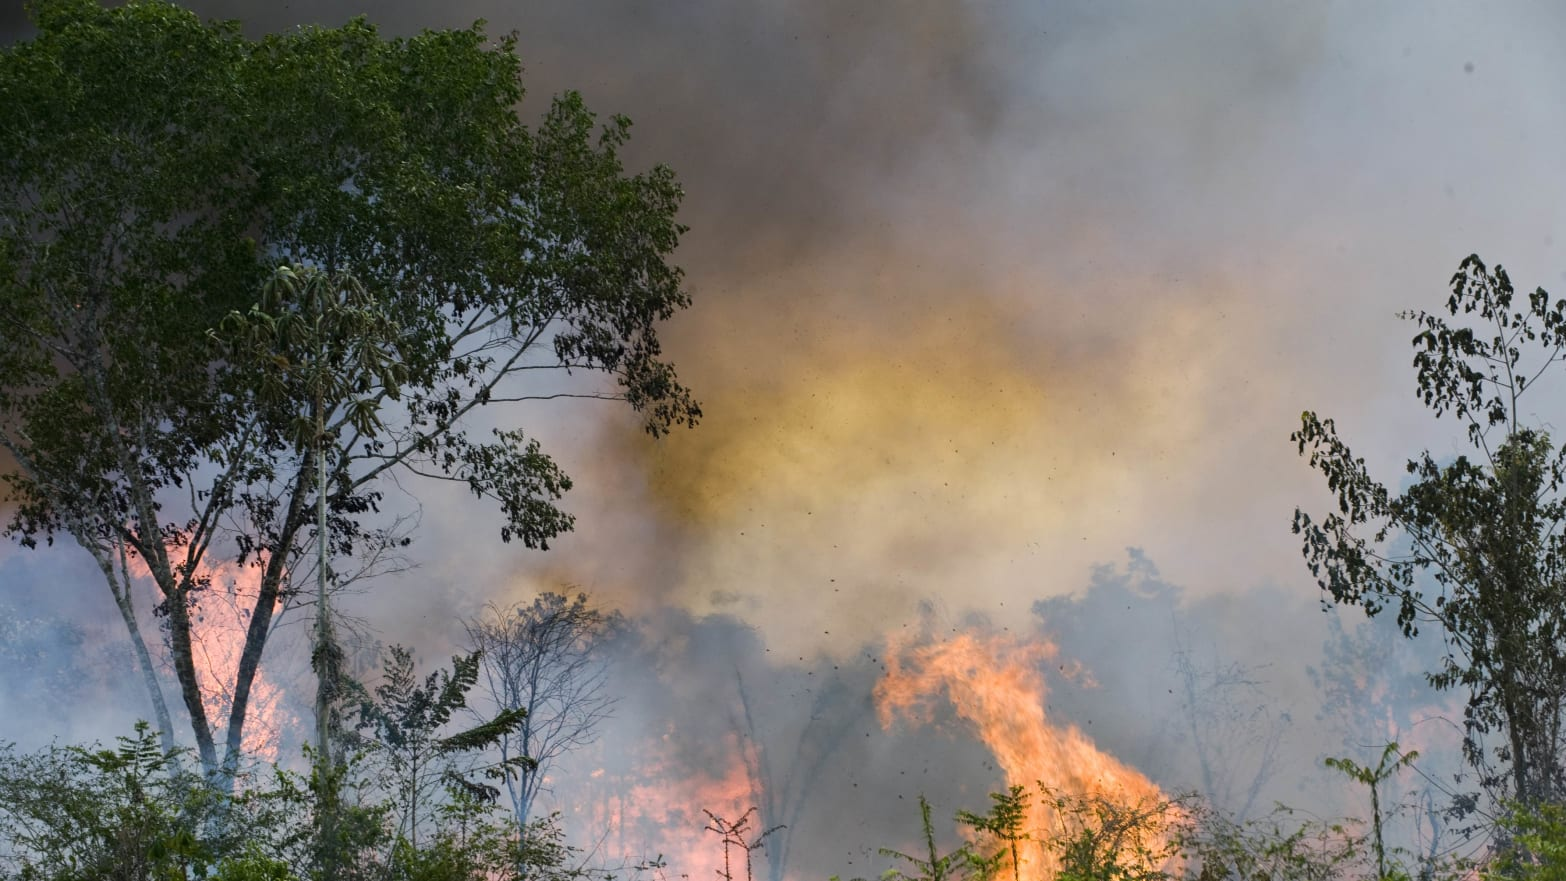 Brazil Military Mobilizes to Fight Amazon Fires Amid Global Backlash